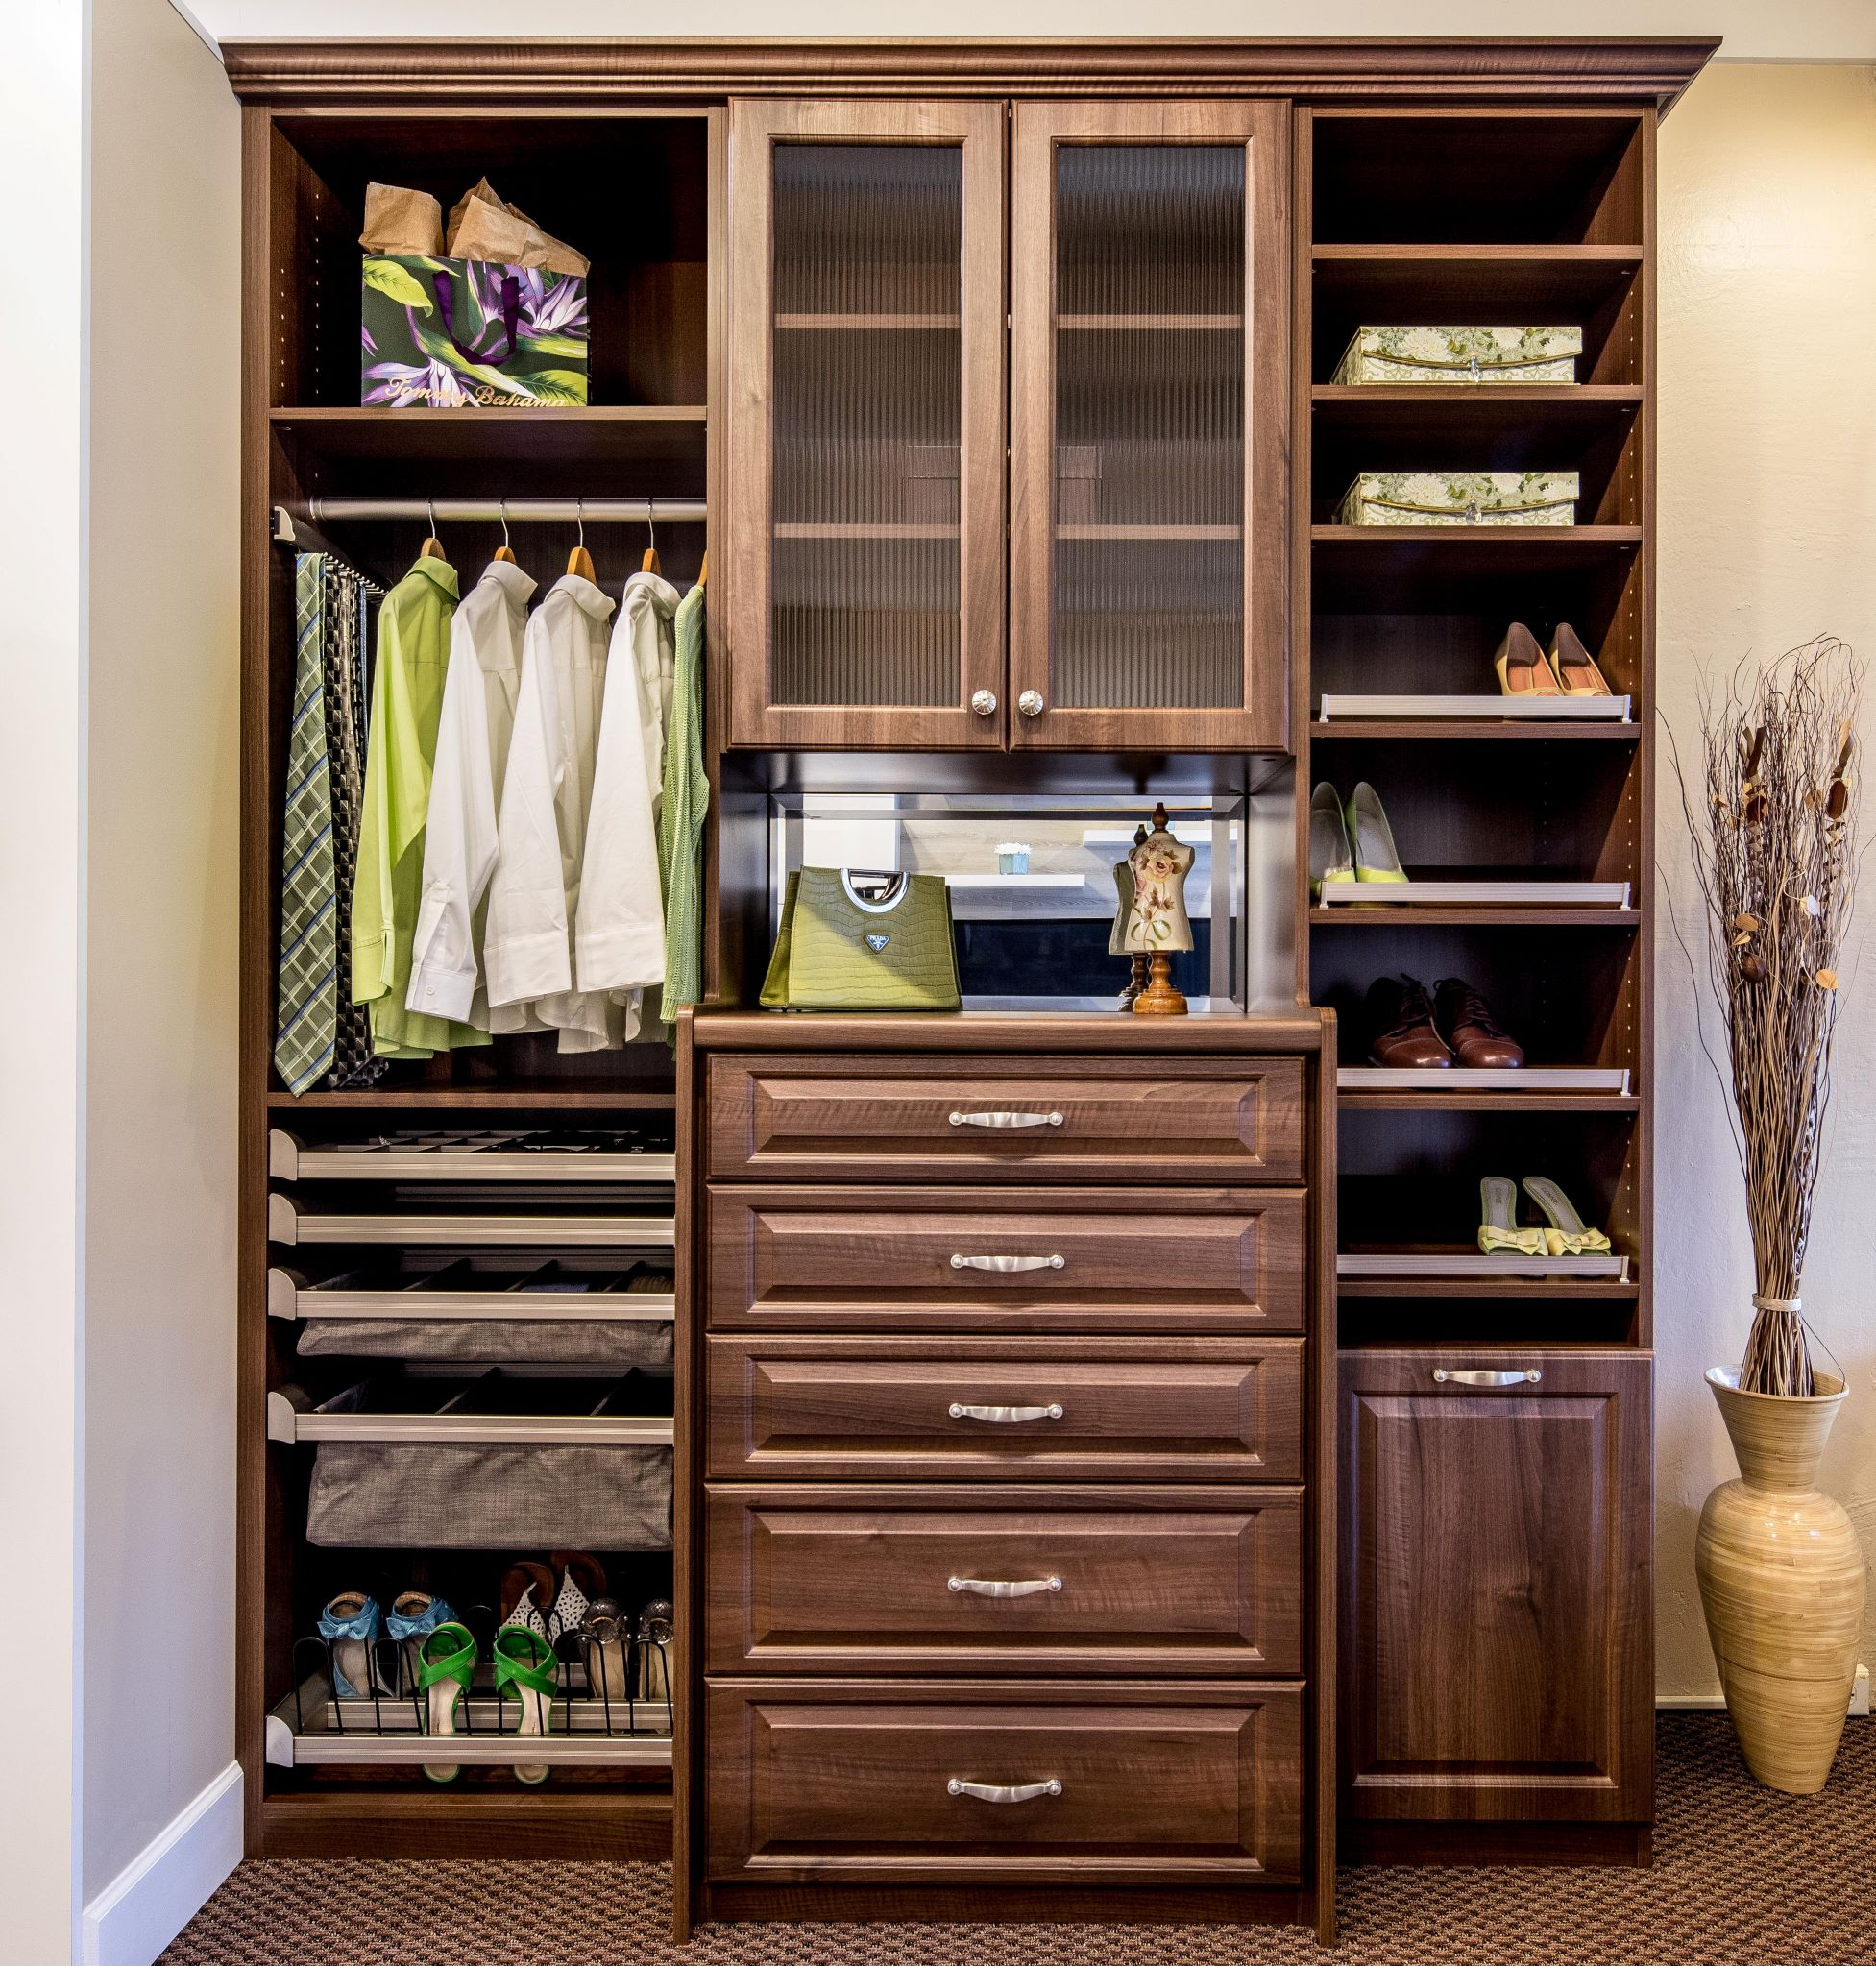 2017-02-07_ Reach-In Closet_Italian Walnut (8)-PX